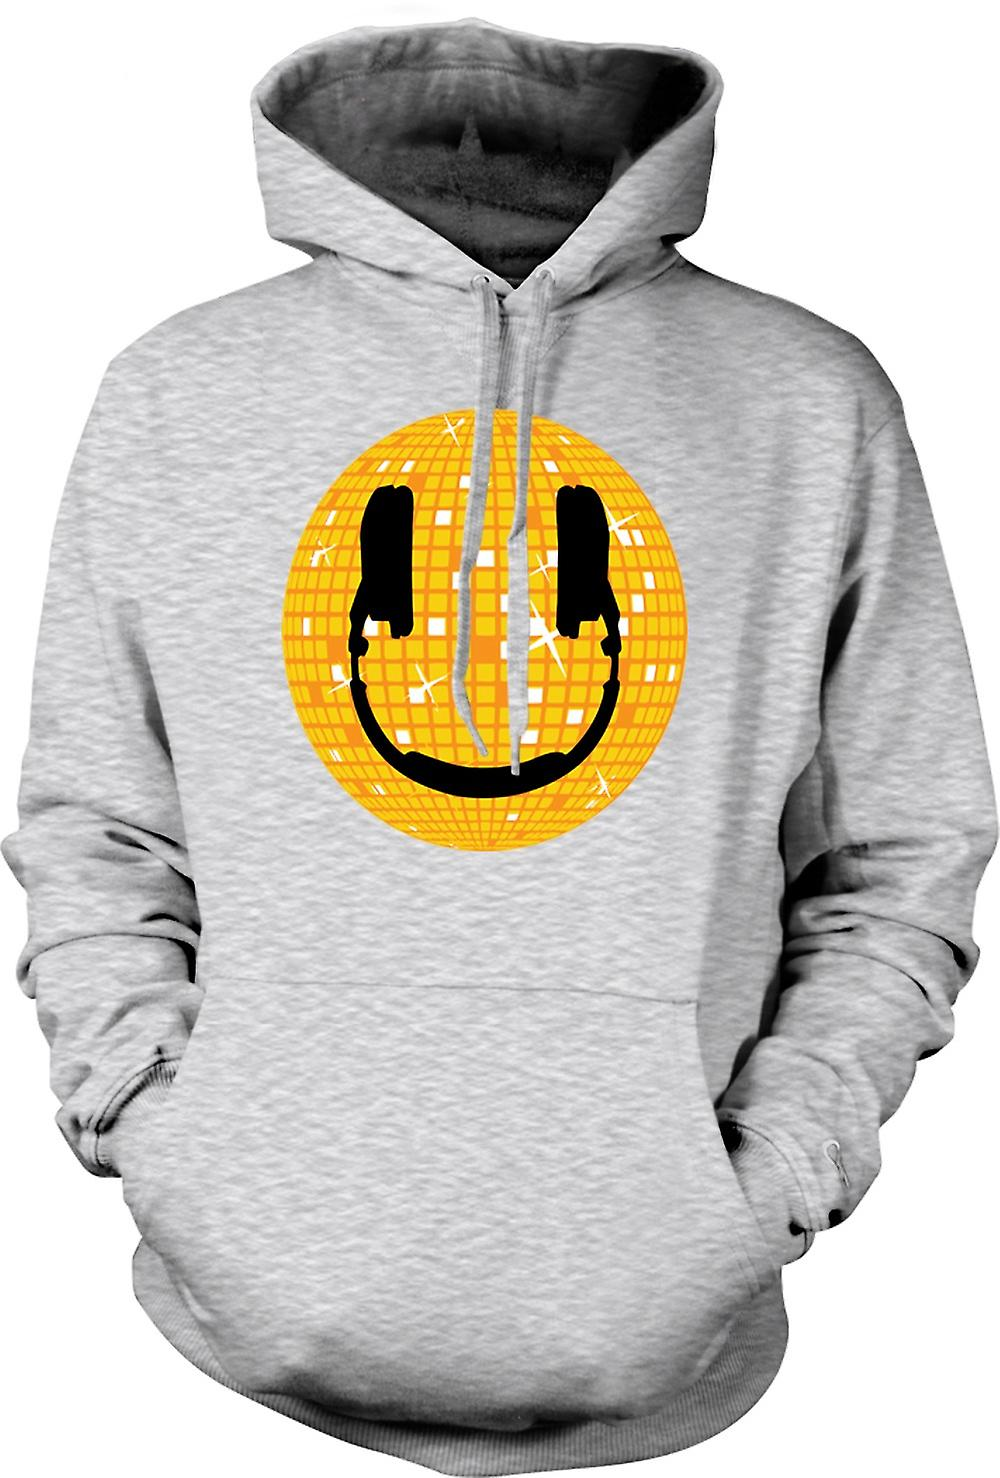 Mens Hoodie - Smiley Face - Disco bal